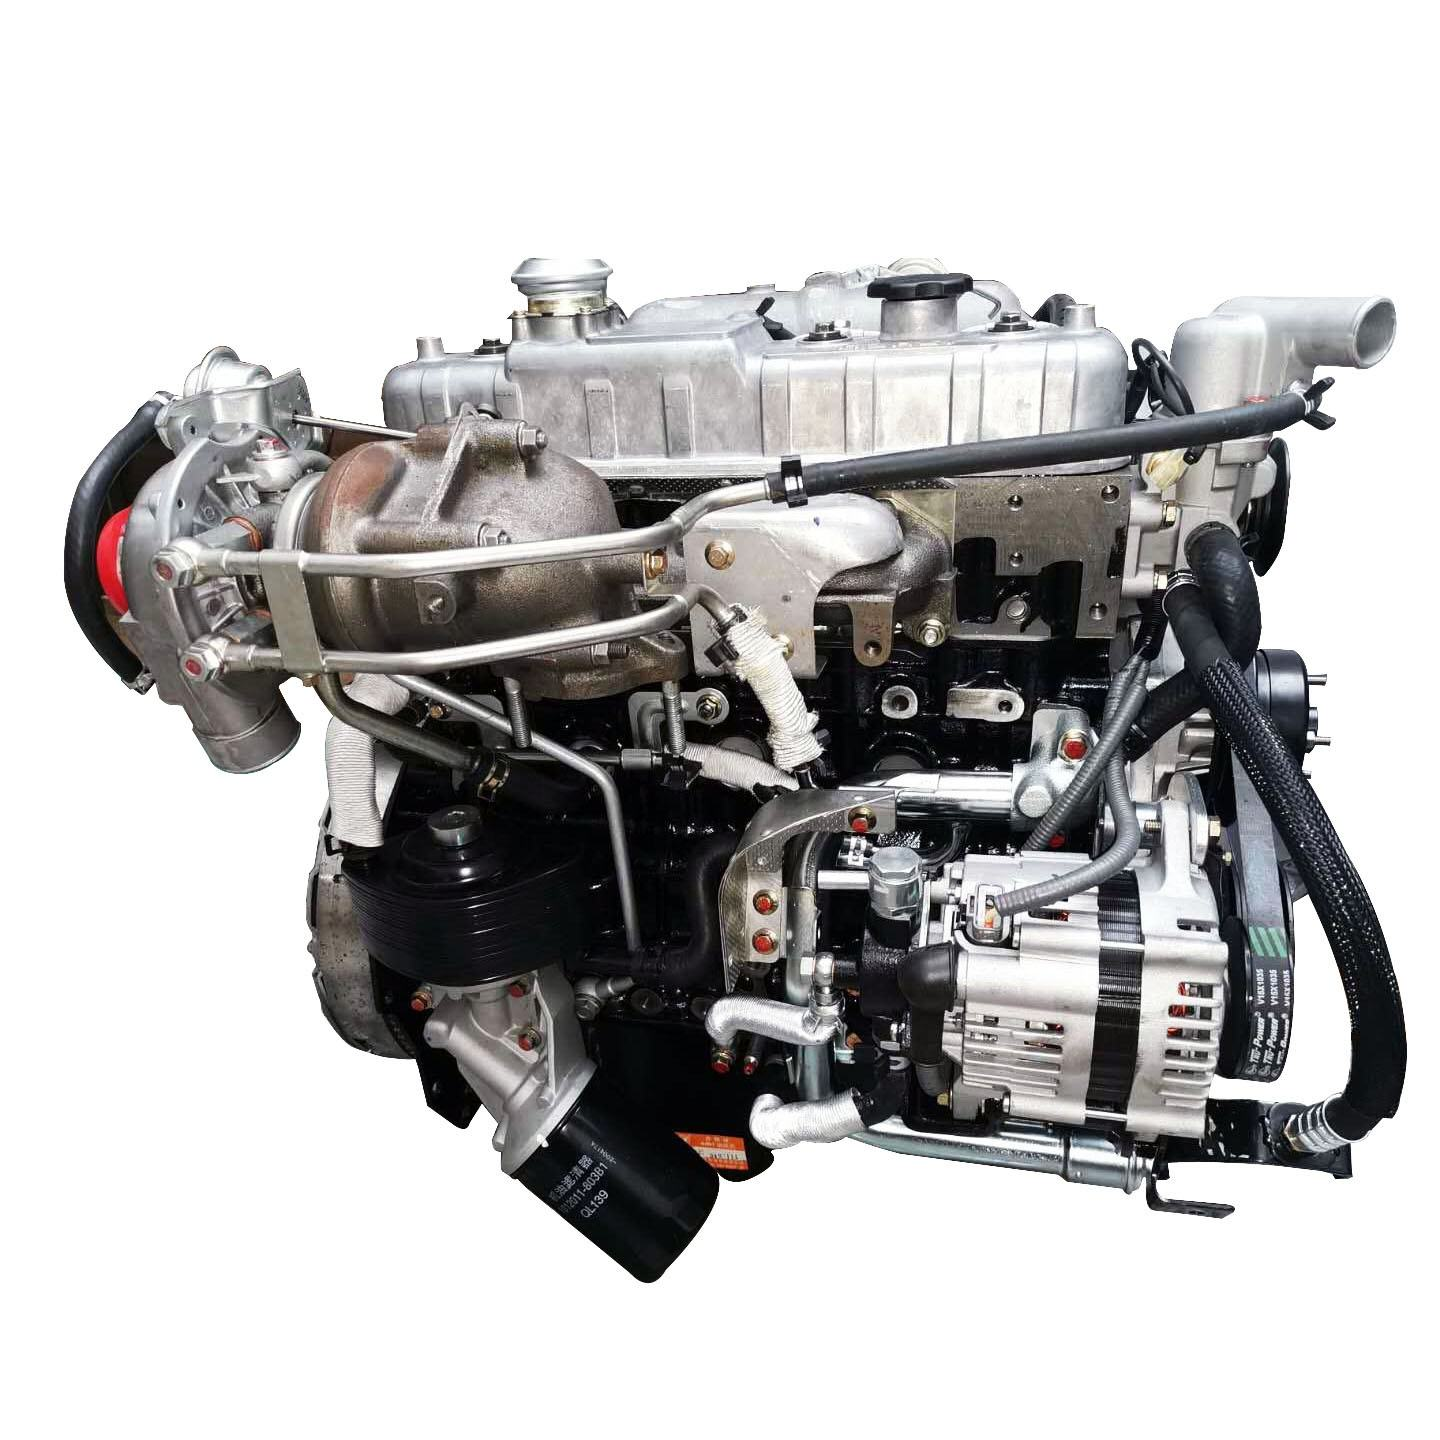 car motor luv dmax diesel 3.0 4jh1 4jh1-tc engine for isuzu trooper diesel engine price